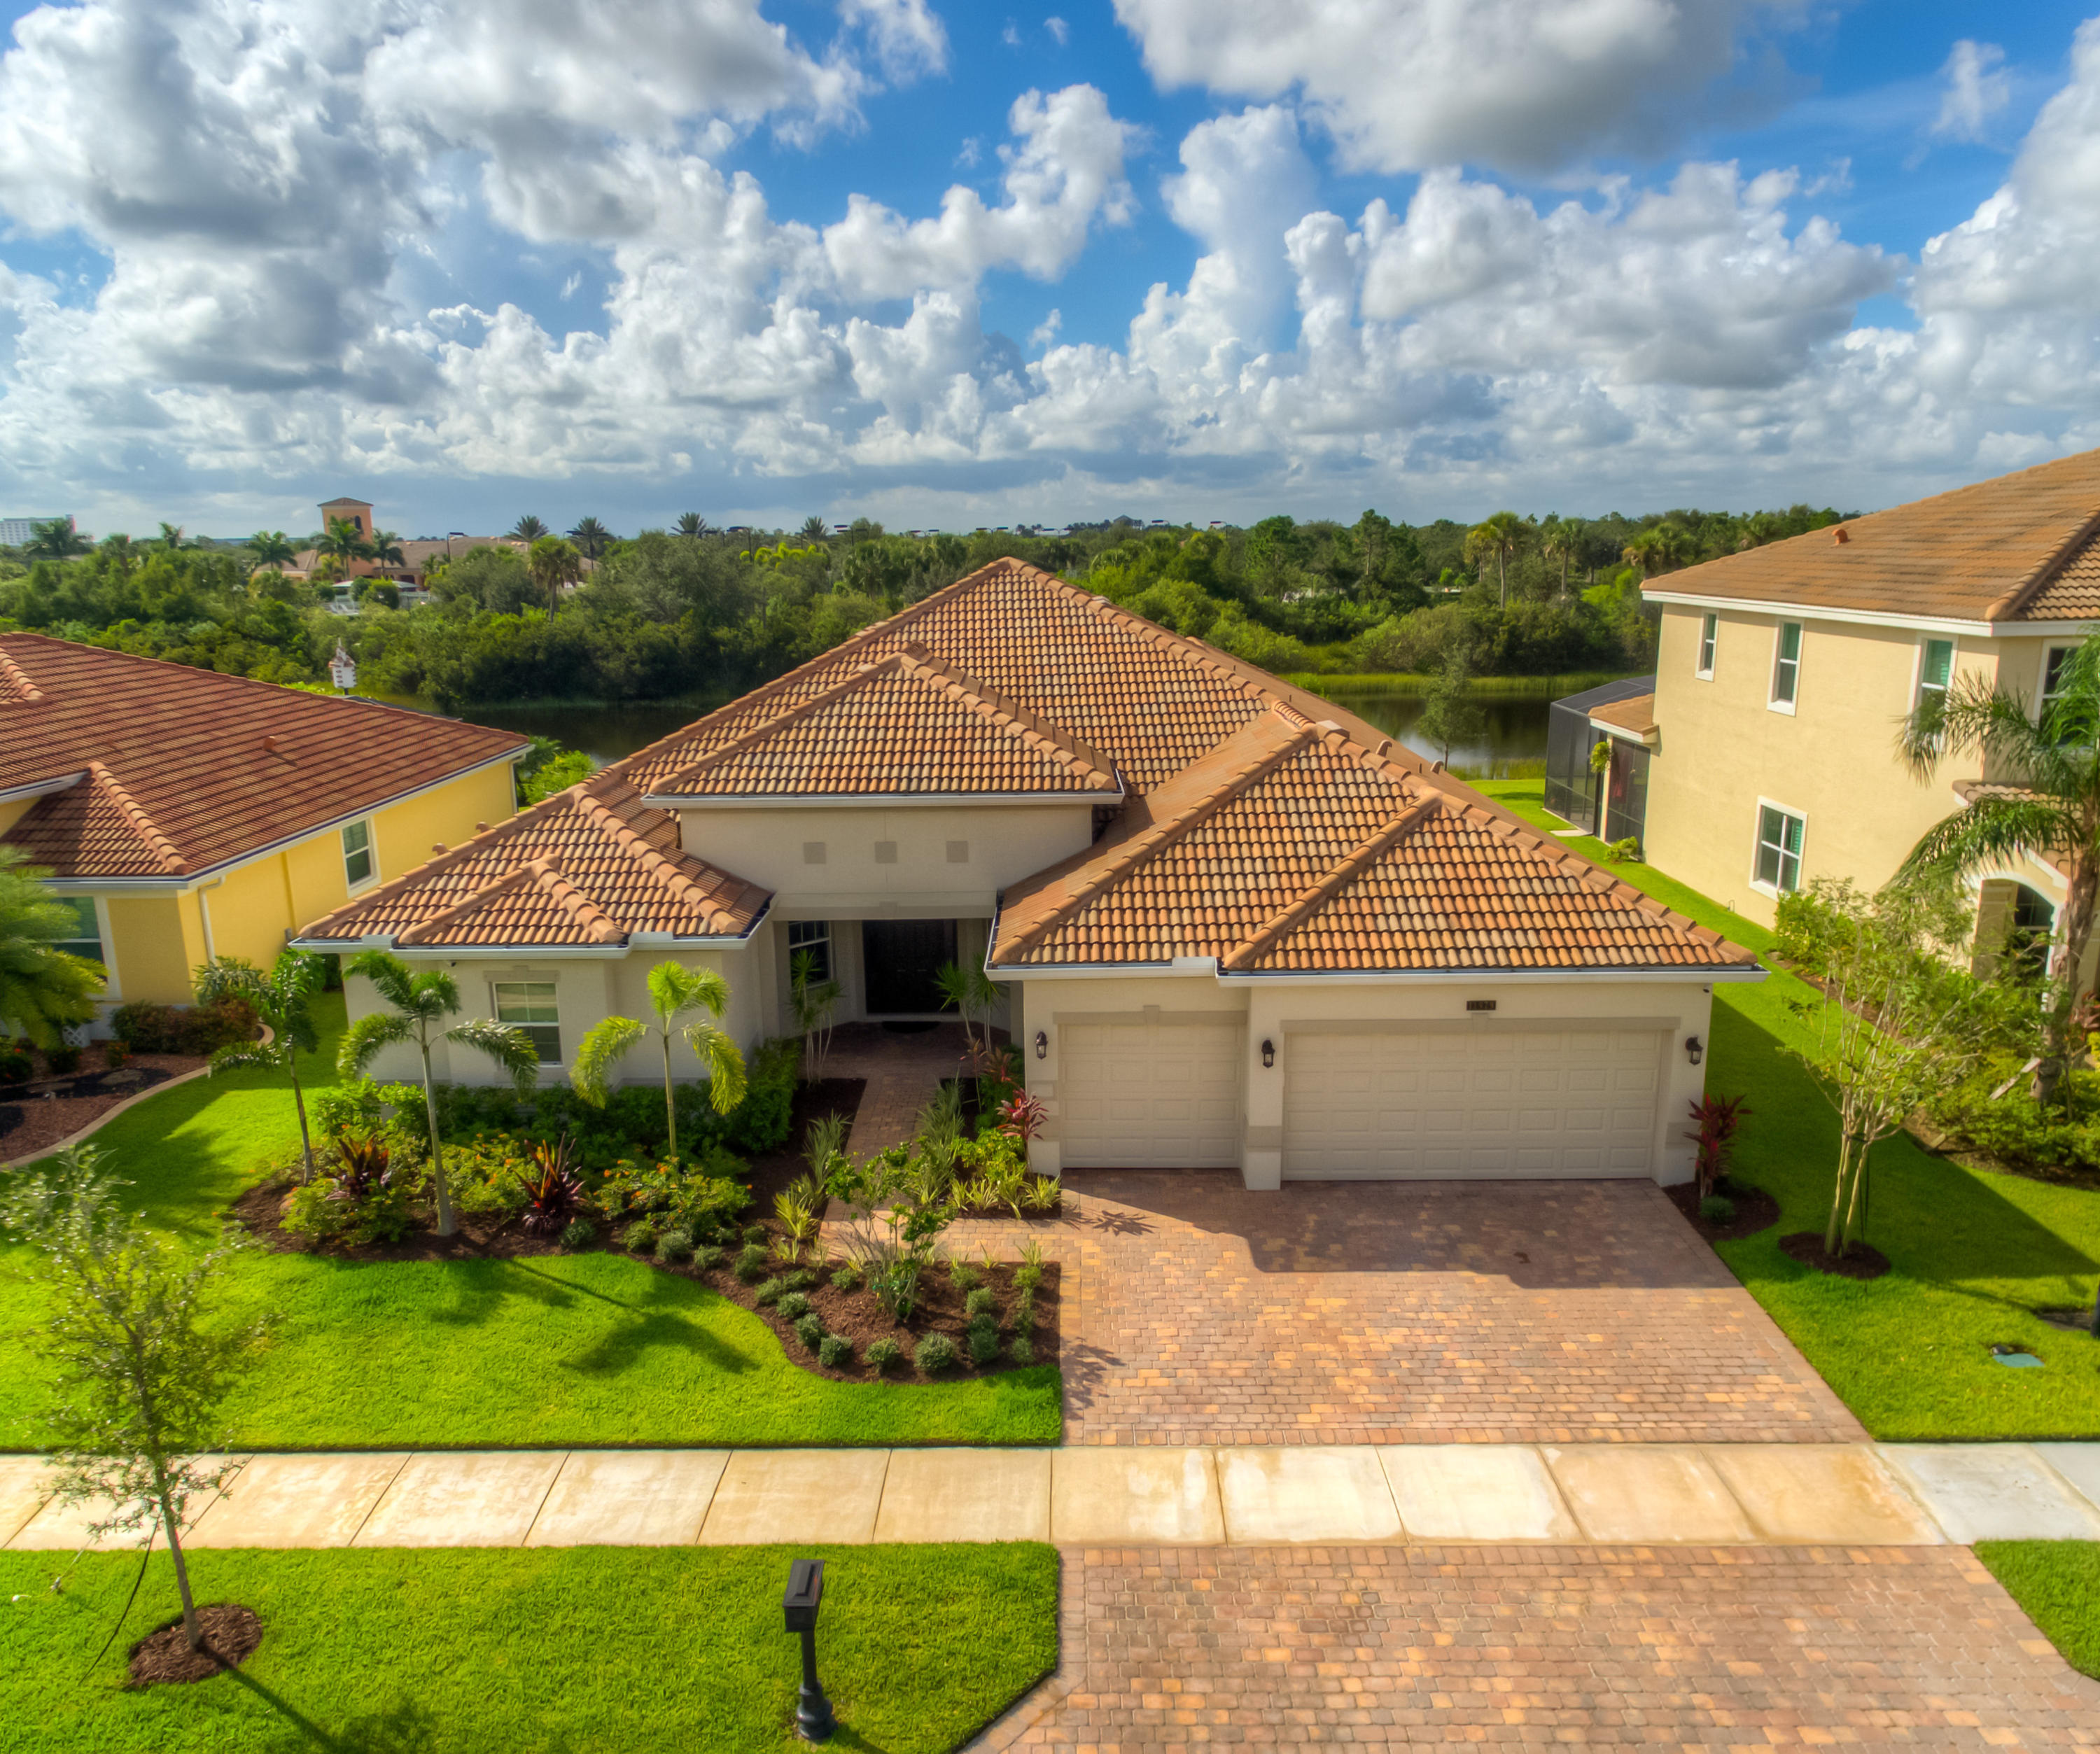 "Wow! This 2016 D.R. Horton-built estate pool home is loaded with gorgeous, modern amenities. Its ideal location is within walking distance to the community pool, yet still offers a secluded, private, and quiet preserve/lake view. A predominantly North/South orientation allows the most daily light exposure to soak up the warm Florida sun while relaxing poolside. Inside, countless upgrades have taken this home above all others including a professionally installed and cutting edge ''Control4'' Complete Home Automation and Entertainment System. Lighting, fans, shades, music, security system and more are controlled on or off site. Elegant mouldings were added everywhere you look. A rich dark wood kitchen with Frigidaire Professional Stainless Steel appliances will make any cook elated. Click MO Wow! This 2016 D.R. Horton-built estate pool home is loaded with gorgeous, modern amenities. First take notice of its ideal location that is within walking distance to the community pool, yet still offers a secluded, private, and quiet preserve/lake view. A predominantly North/South orientation allows the most daily light exposure to soak up the warm Florida sun while relaxing poolside.  Inside, countless upgrades have taken this home above all others. A professionally installed and cutting edge ""Control4"" Complete Home Automation and Entertainment System has been integrated into this home. It is comprised of distributed & zoned music throughout the home and patio with full control of interior and exterior lighting, security cameras, ceiling fans, security system, motorized window shades, thermostat, door locks, and garage door opener. TV, 4K Blu-ray player, and surround sound system control are unified with a single remote. The wall mounted touchscreens in the common areas with intercom ability are user-friendly and control everything yet the system can also be accessed remotely with a phone, tablet or computer. The details on this are expansive! The open and inviting floorplan is perfect for entertaining yet still has 5 spacious bedrooms.  Decorative crown, base, window, and door moldings have been added and enhanced throughout. Interior painting, new lighting fixtures, fans, and décor were carefully selected to coordinate beautifully.  An elegant dark wood kitchen boasts a ton of room for gathering or cooking with a Frigidaire Pro Stainless Steel appliances package. Santa Cecelia granite countertops, a central island, tile backsplash, and under cabinet, recessed, and pendant lighting make the kitchen a focal point. A wet-bar is centrally located for easy access and entertaining as well. The 2 front guest rooms share a bathroom with dual sinks and granite top. All of the 3 bathrooms' fixtures, mirrors, and lighting have been upgraded over the builder's grade. A ""mother-in-law"" bedroom and separate bathroom is located off the family room.  French doors, formal lighting, and a picture niche invite you into the master suite where the carpet has been replaced with hand-scraped, Pergo wood flooring throughout. The slider and window offer gorgeous views to the backyard. The master bathroom features a soaking tub, built-in decorative shelving, walk-in shower with soap niches, and large cabinet drawers.  The laundry room includes an LG washer/dryer, washtub, and overhead cabinets. The expansive back lanai with a custom dome enclosure allows you to enjoy the outdoors no matter your schedule. The freeform pool with adjustable water fountains is positioned to make the most out of the deck space. The ""Kool-deck"" coating has been matched to compliment the exterior color. Enjoy your lake view surrounded by a wildlife preserve area that makes for great scenery and enhanced privacy. An expansive 3-car garage keeps everything dry and protected. Bring us your best offer today to make this great home yours!"